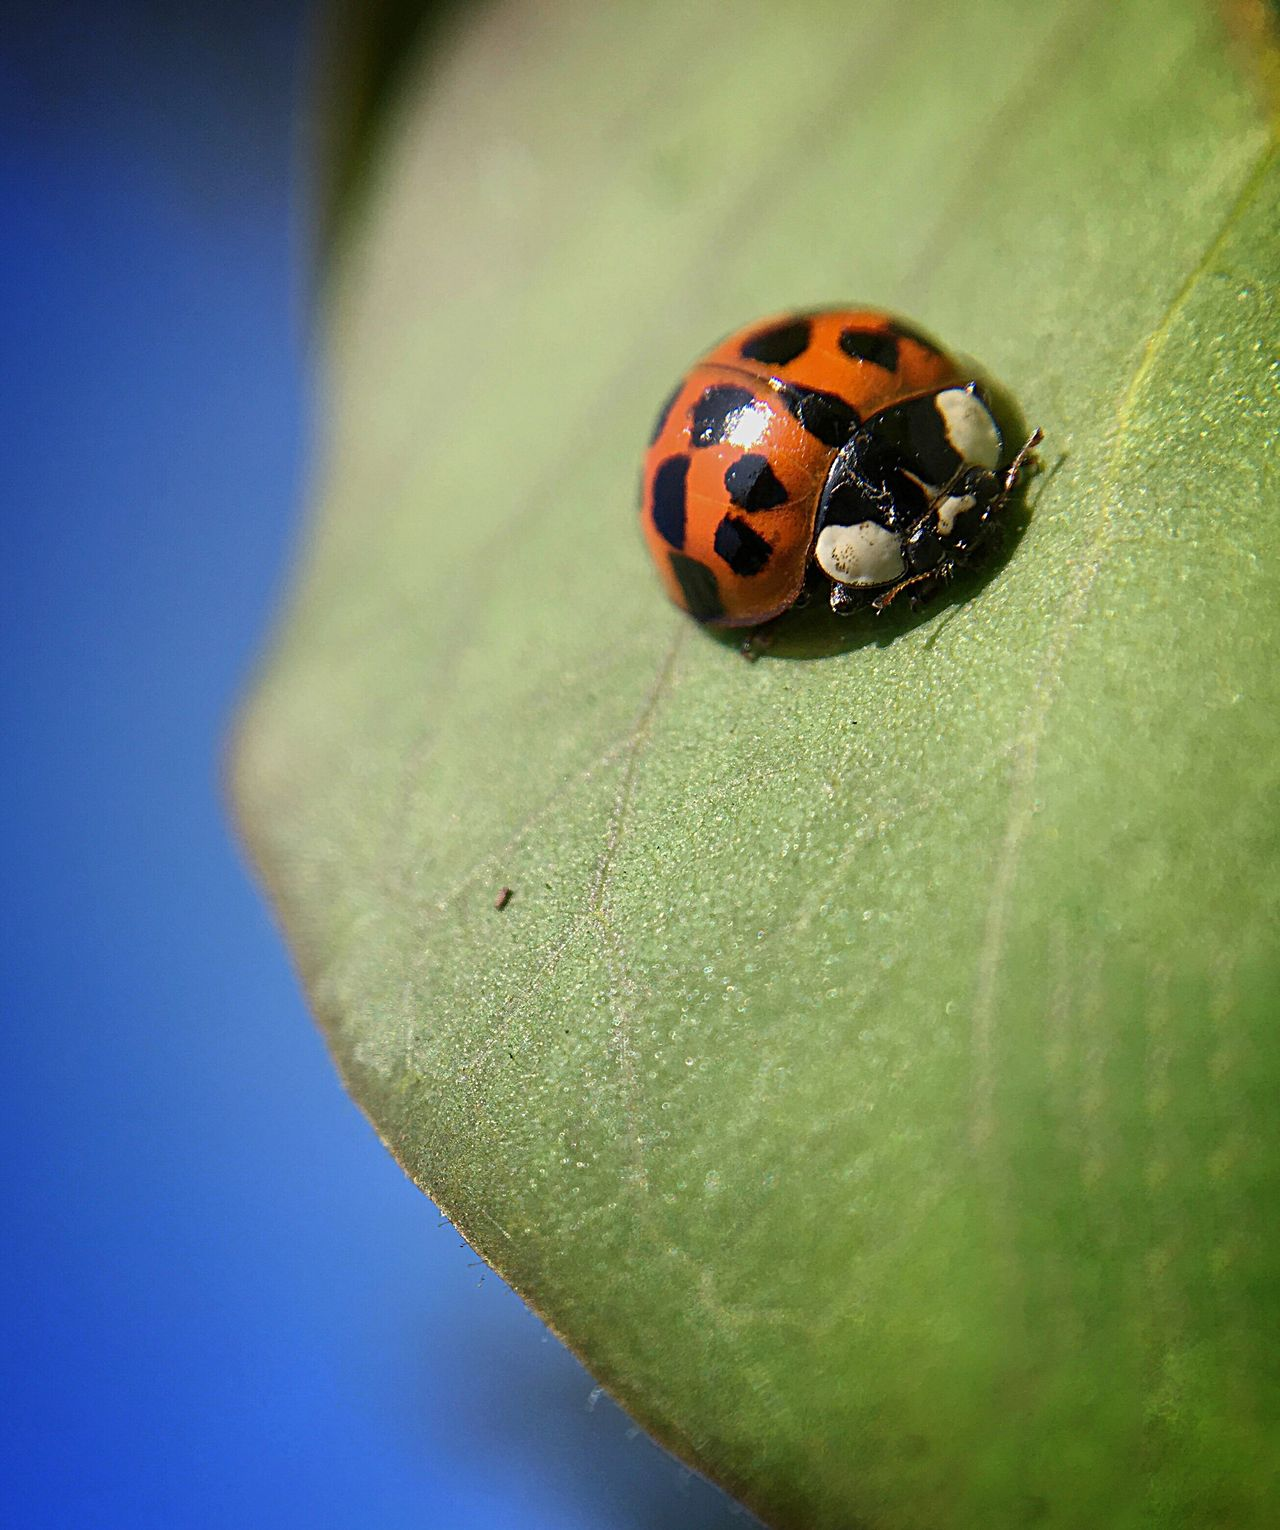 Ladybug Insect Animal Themes Ladybug One Animal Close-up Outdoors No People Tiny Leaf Garden Photography Beauty In Nature Fragility